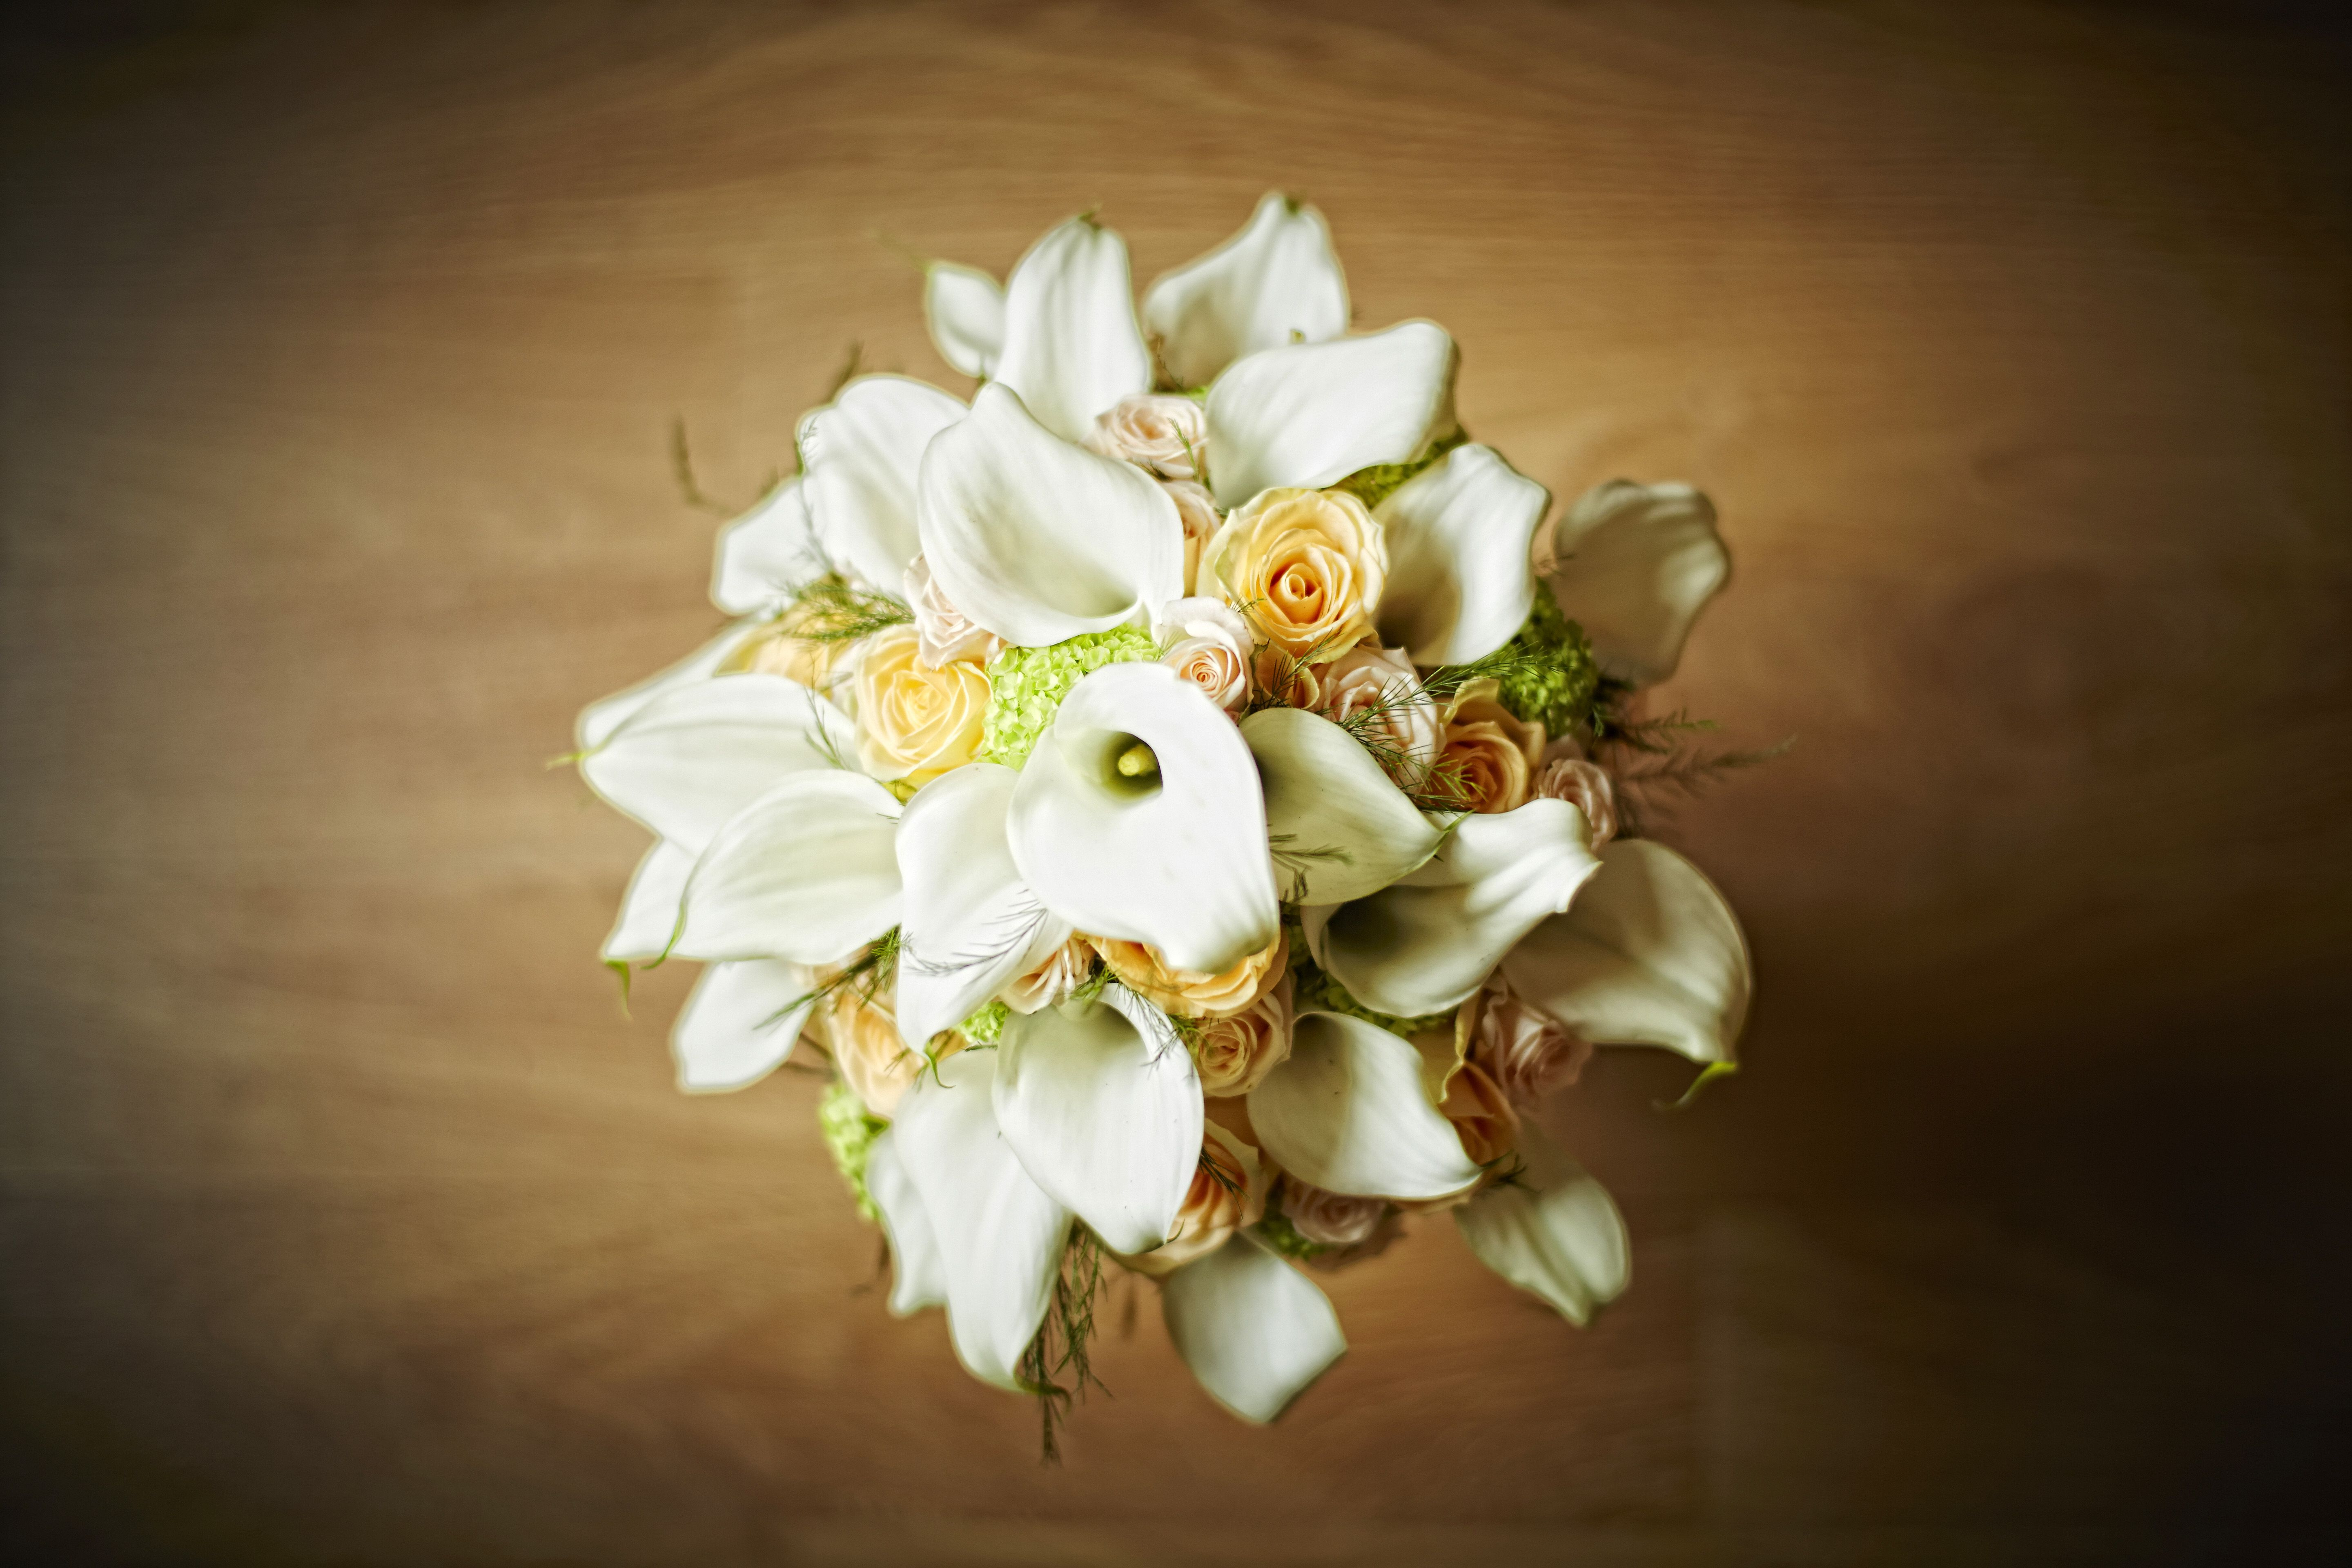 12 wedding anniversary flowers and their meanings